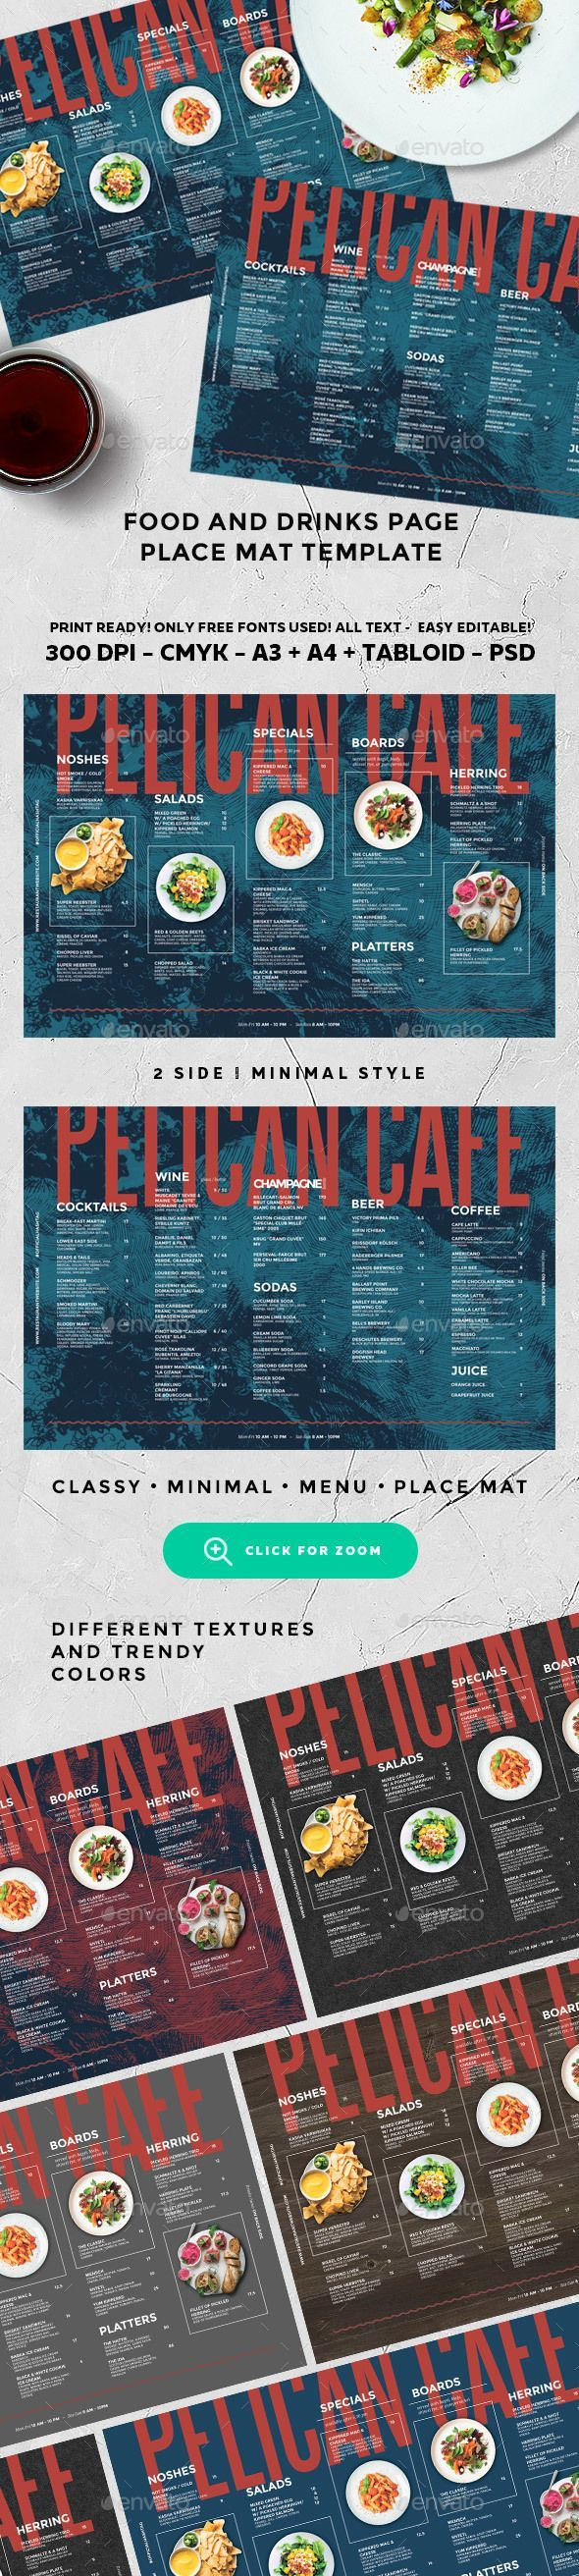 Cafe Menu Food. Creative food menu templates for your restaurant business.  More #food #menu for your #brand you can download here ➝ https://graphicriver.net/category/print-templates/food-menus?ref=Marchiez